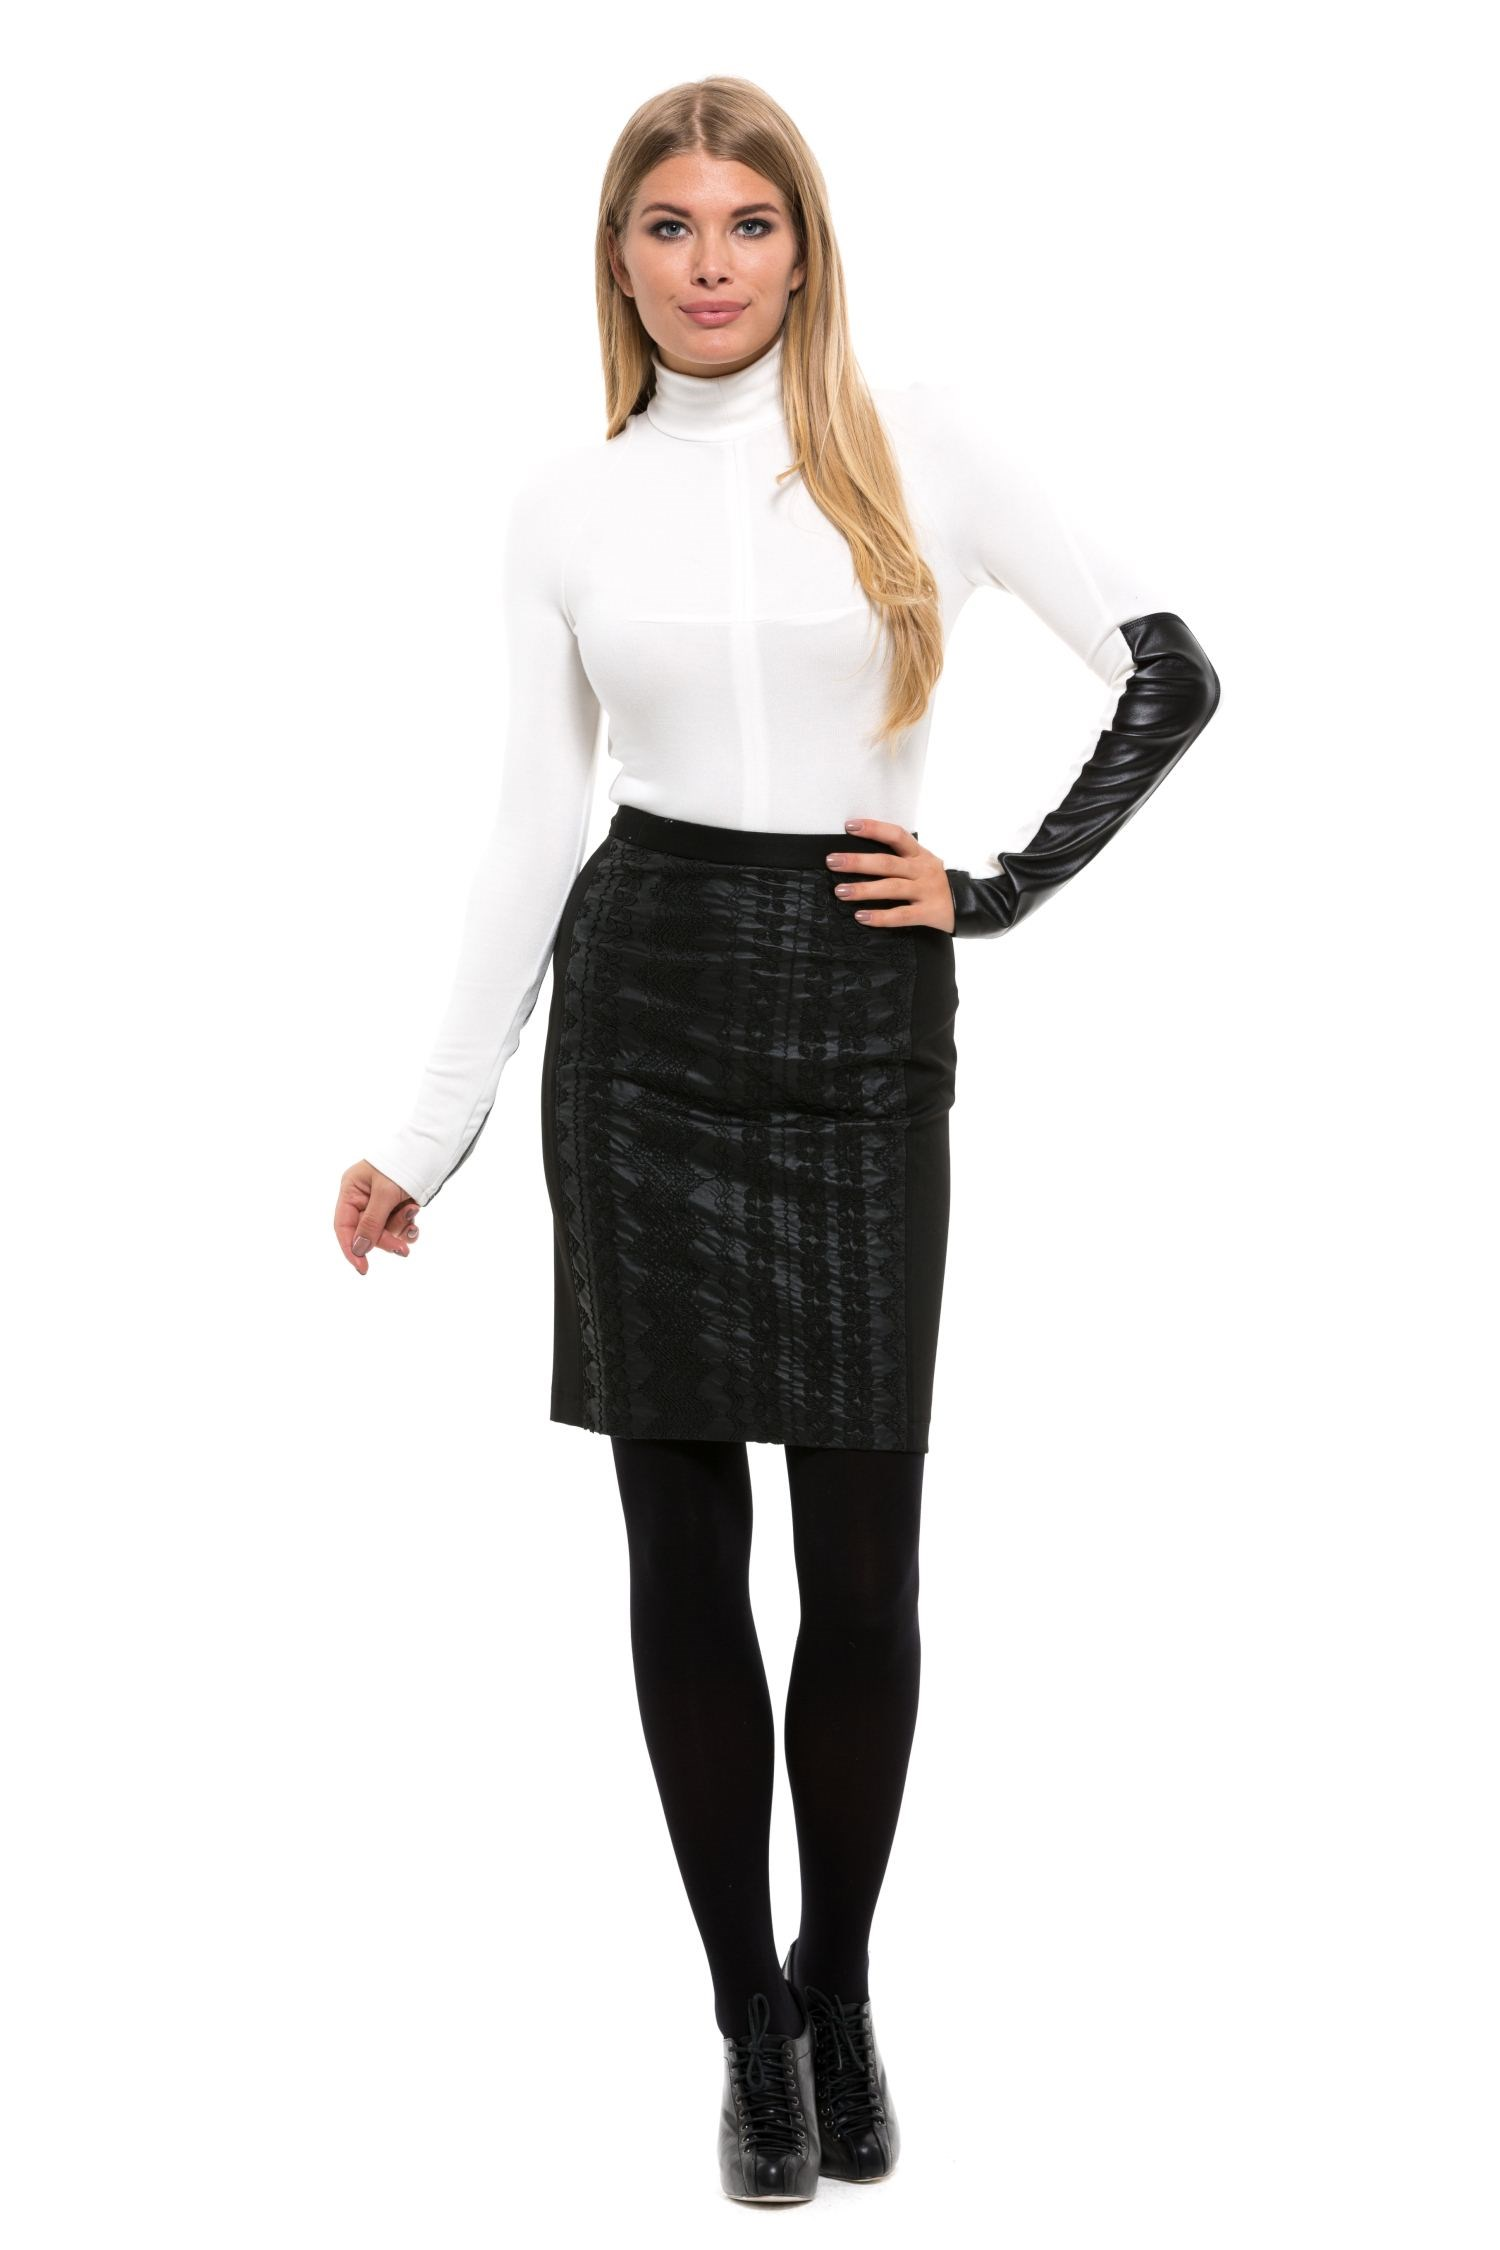 Skirt pencil knee-length and narrow Belt tie waist plaid pencil skirt